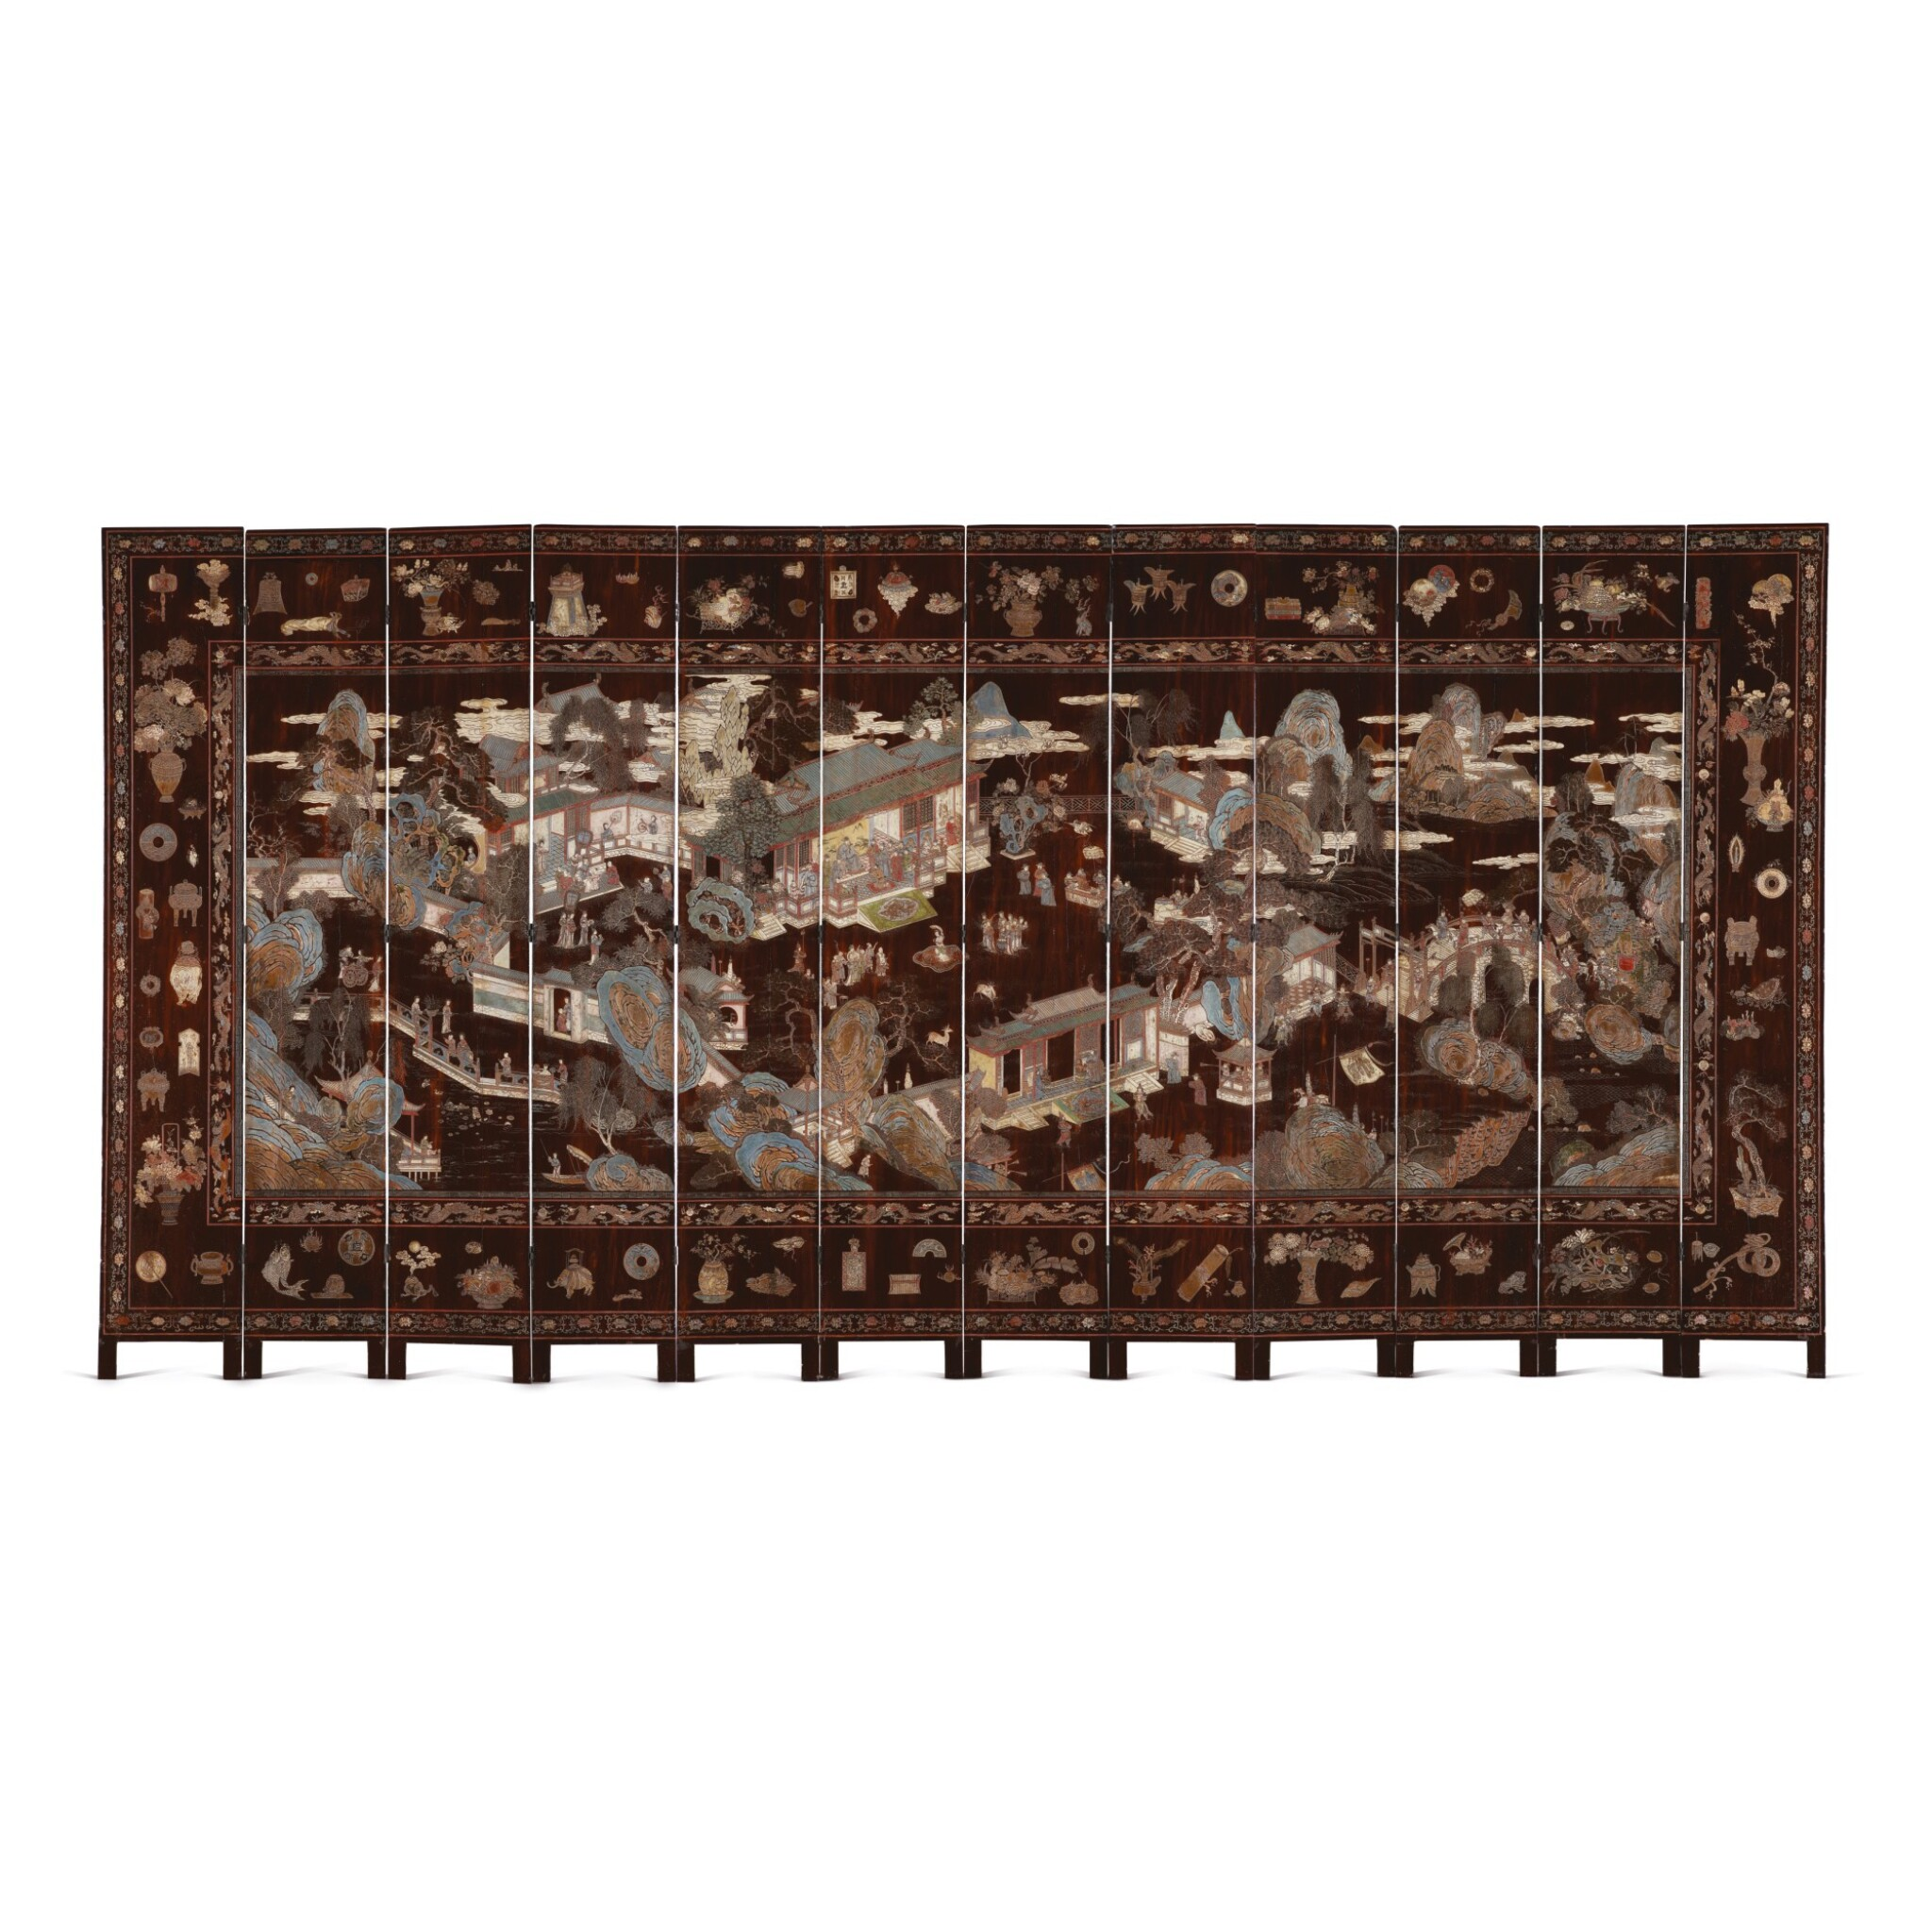 View 1 of Lot 730. AN INSCRIBED TWELVE-PANEL COROMANDEL LACQUERED SCREEN, QING DYNASTY, KANGXI PERIOD.